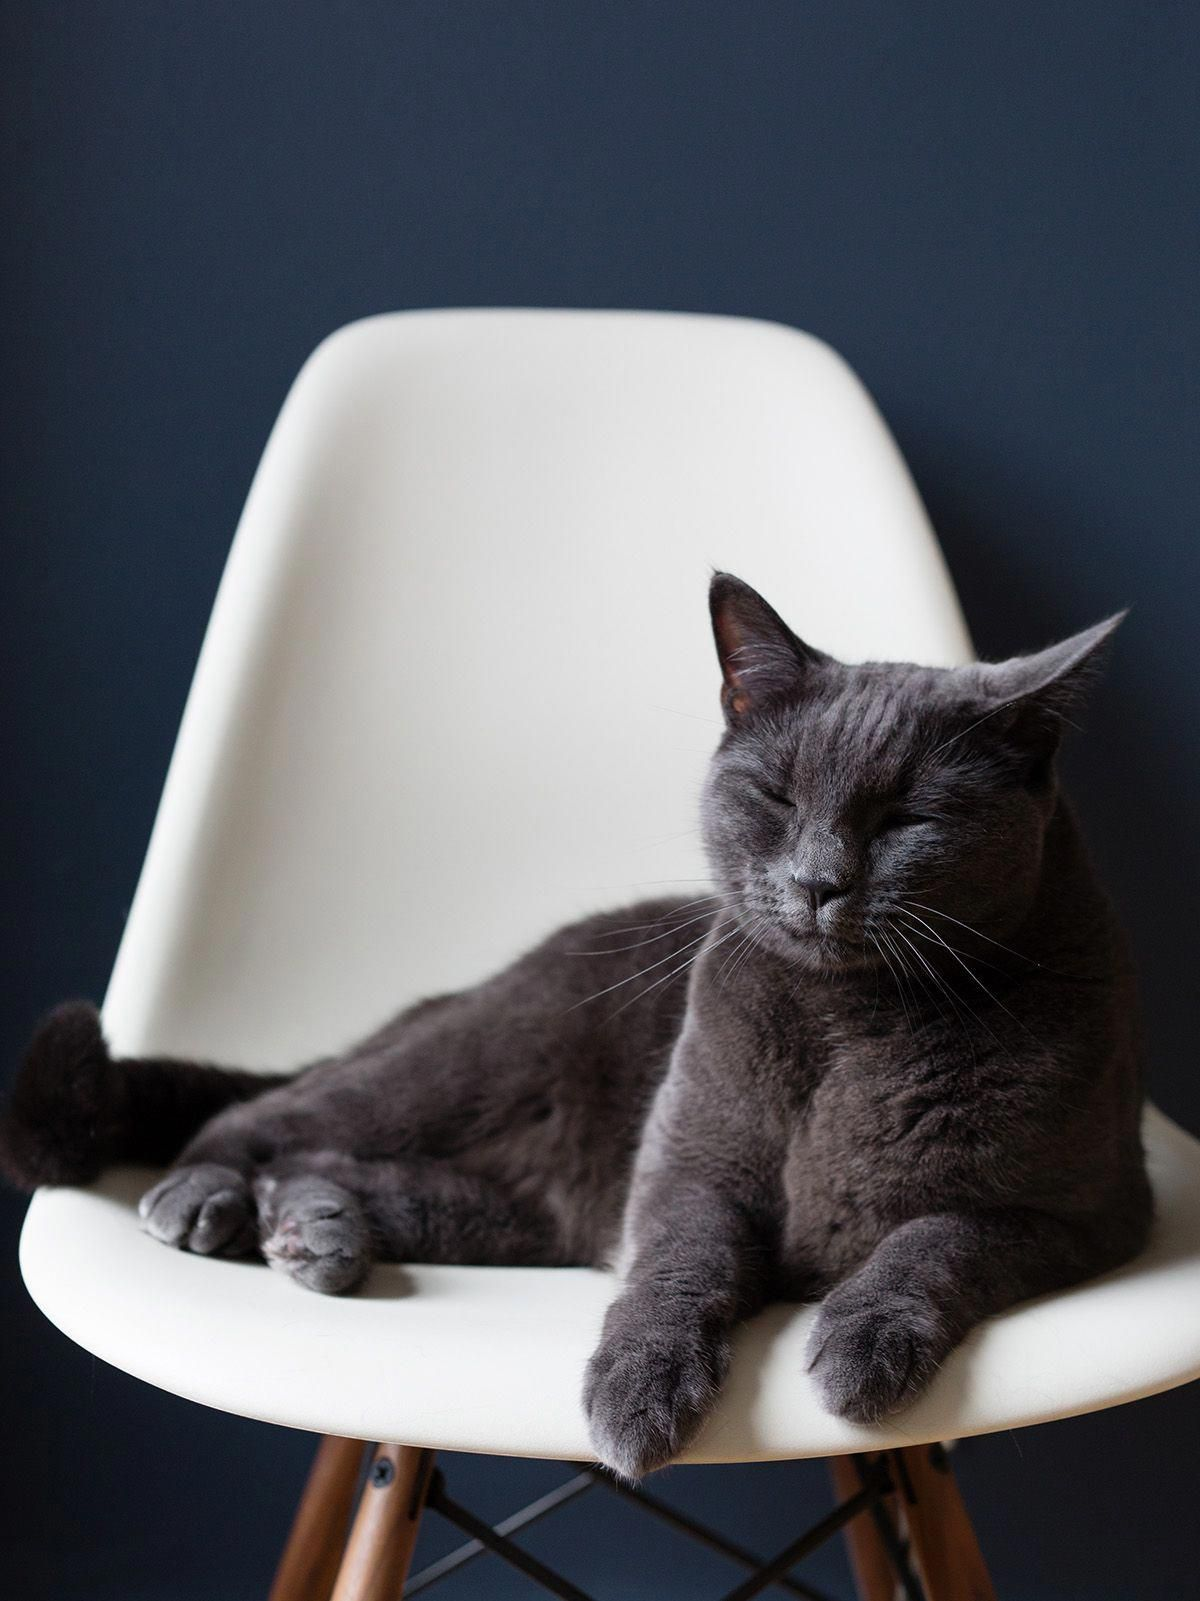 Afterthecups It S So Hard Being Me Greycat Blue Cats Russian Blue Cat Russian Blue